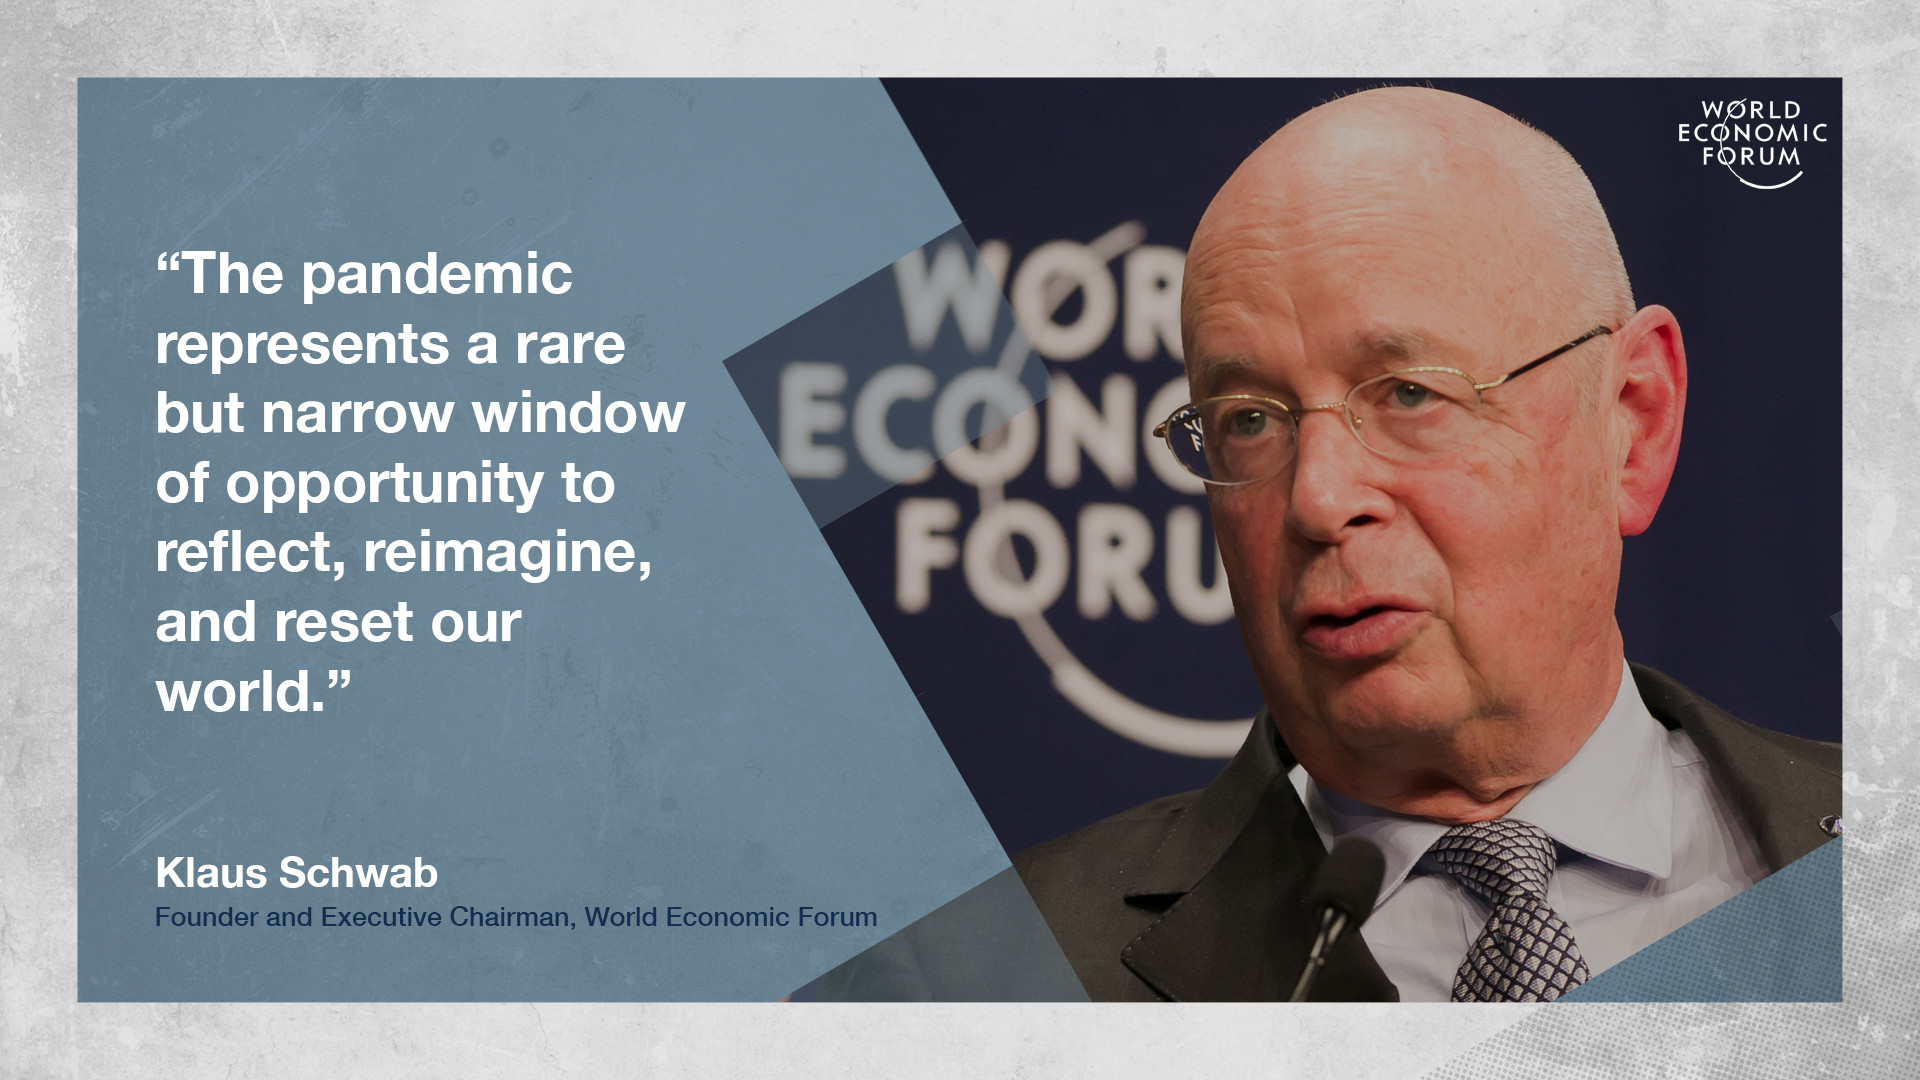 World Economic Forum Sets Ball Rolling on Overcoming Global Crisis, Proposes 'The Great Reset'